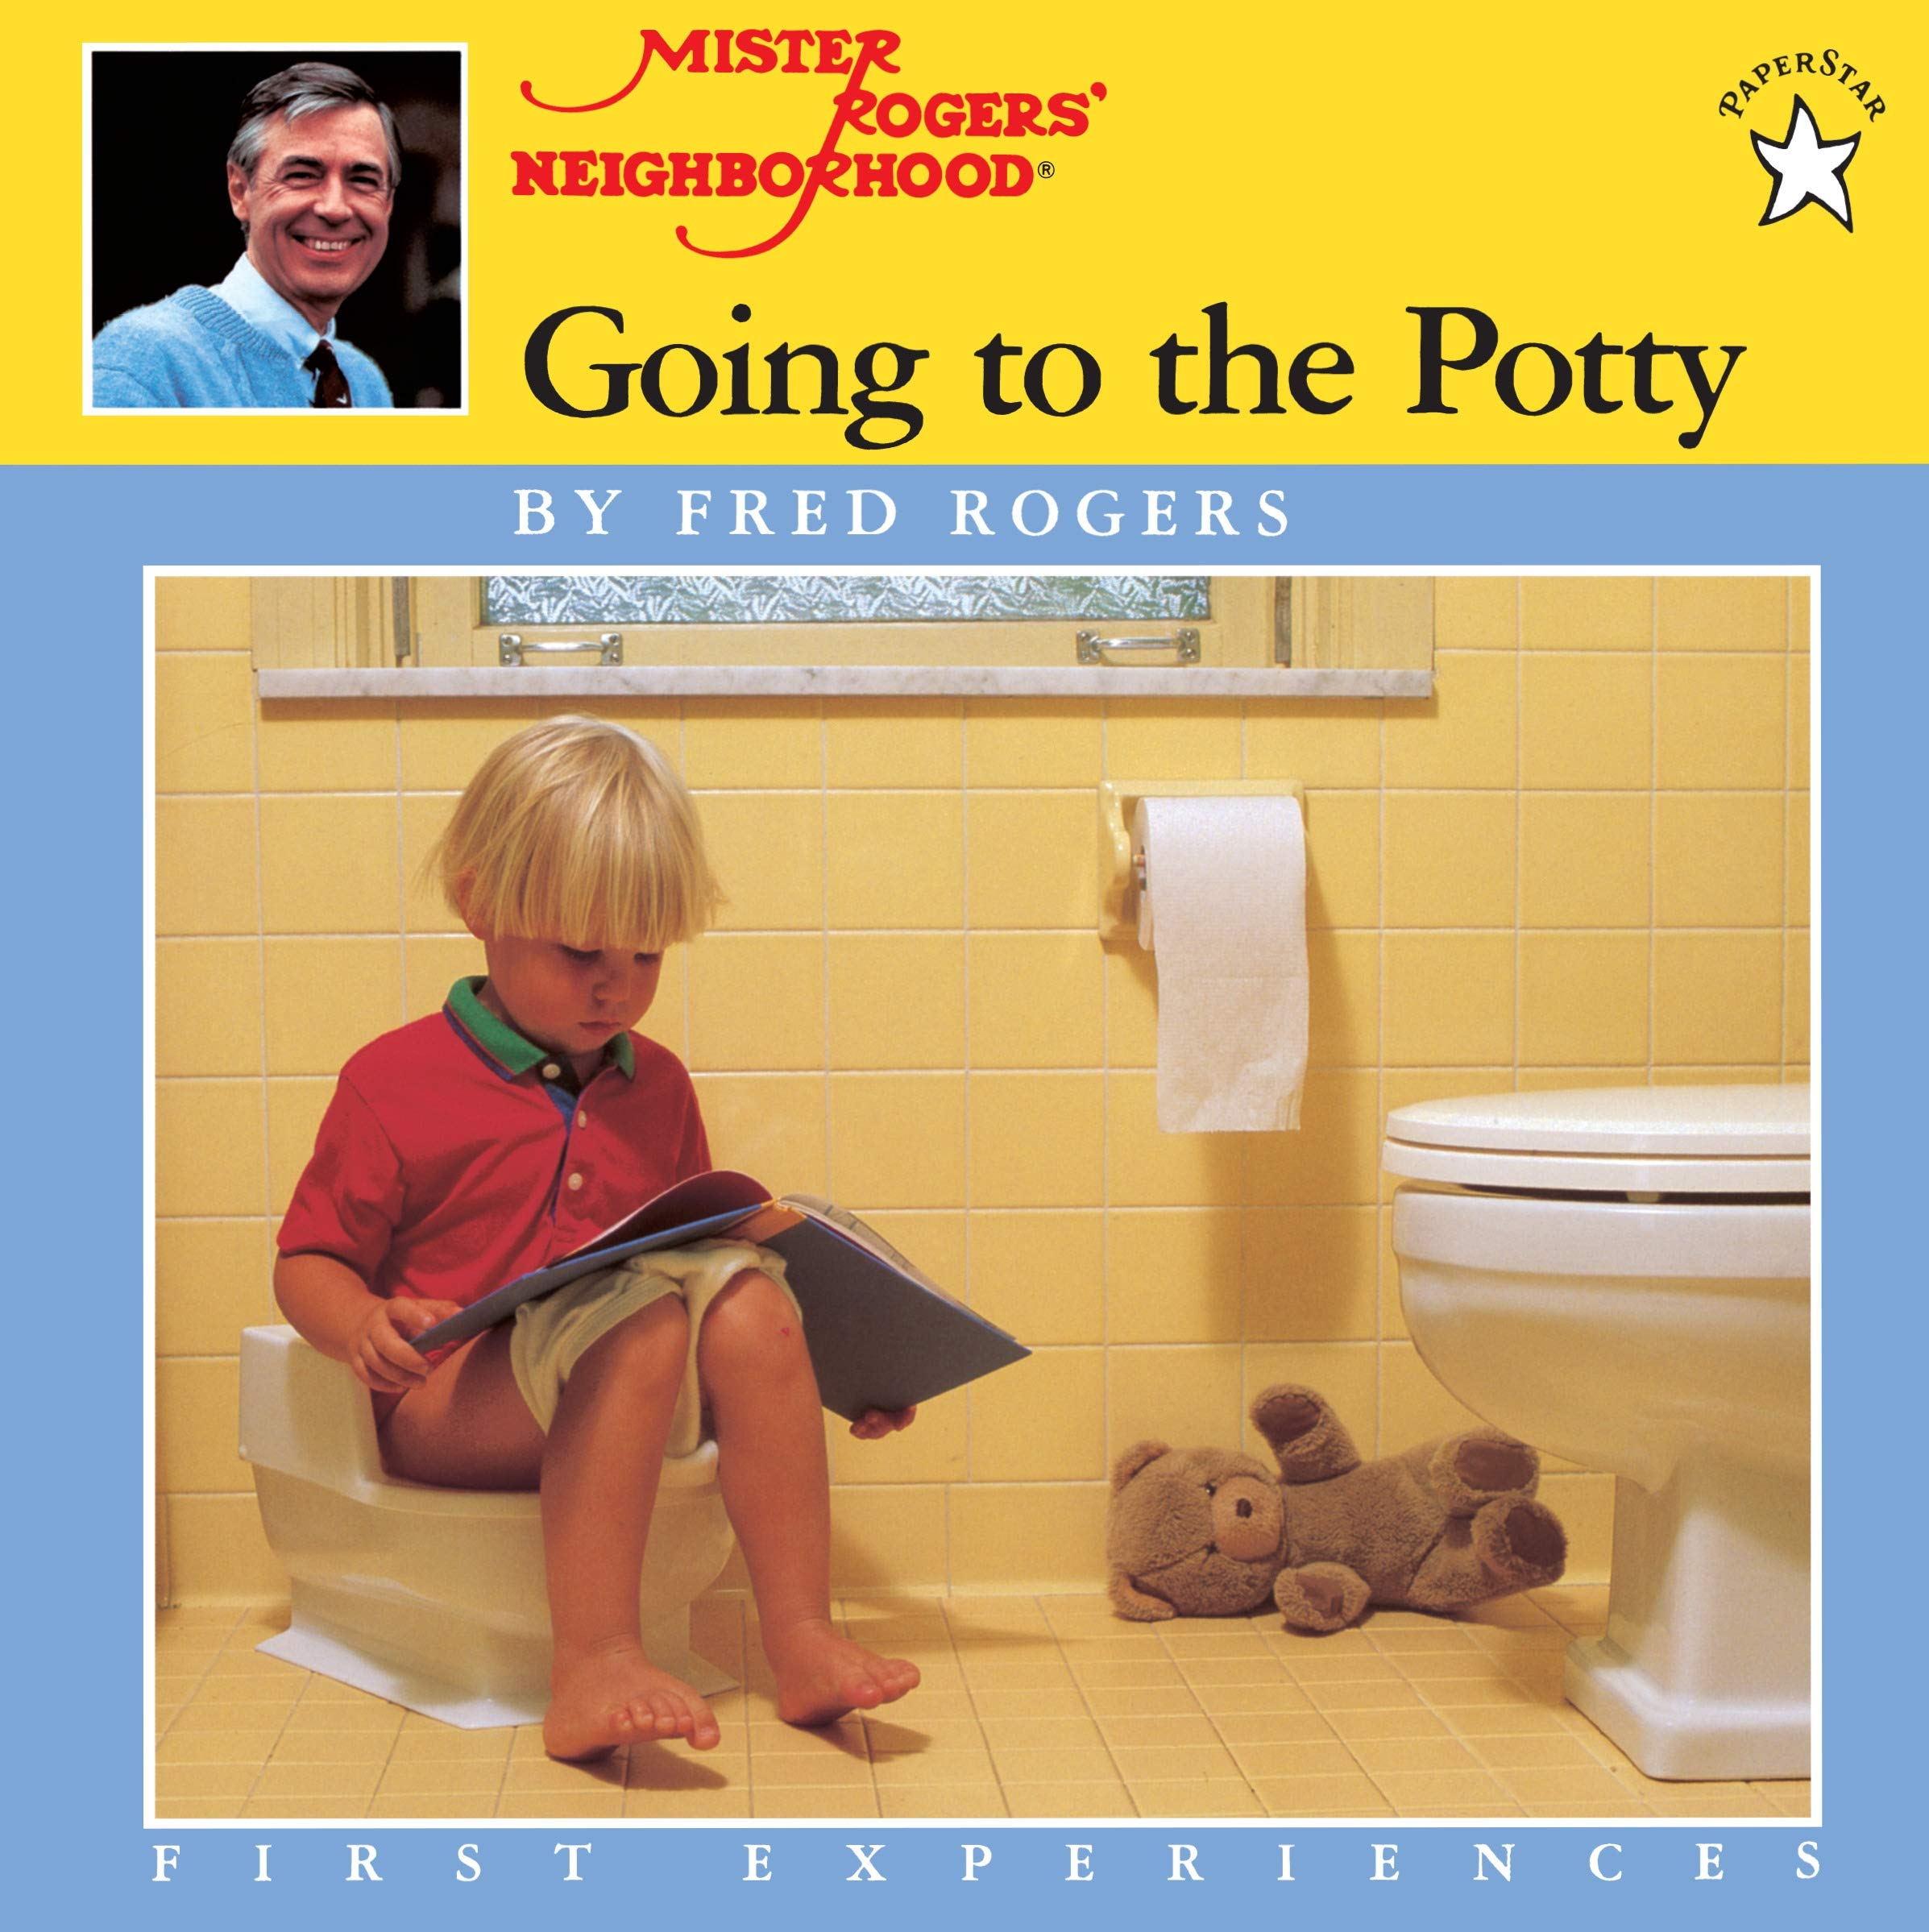 Going To The Potty Mr Rogers Rogers Fred 9780698115750 Amazon Com Books